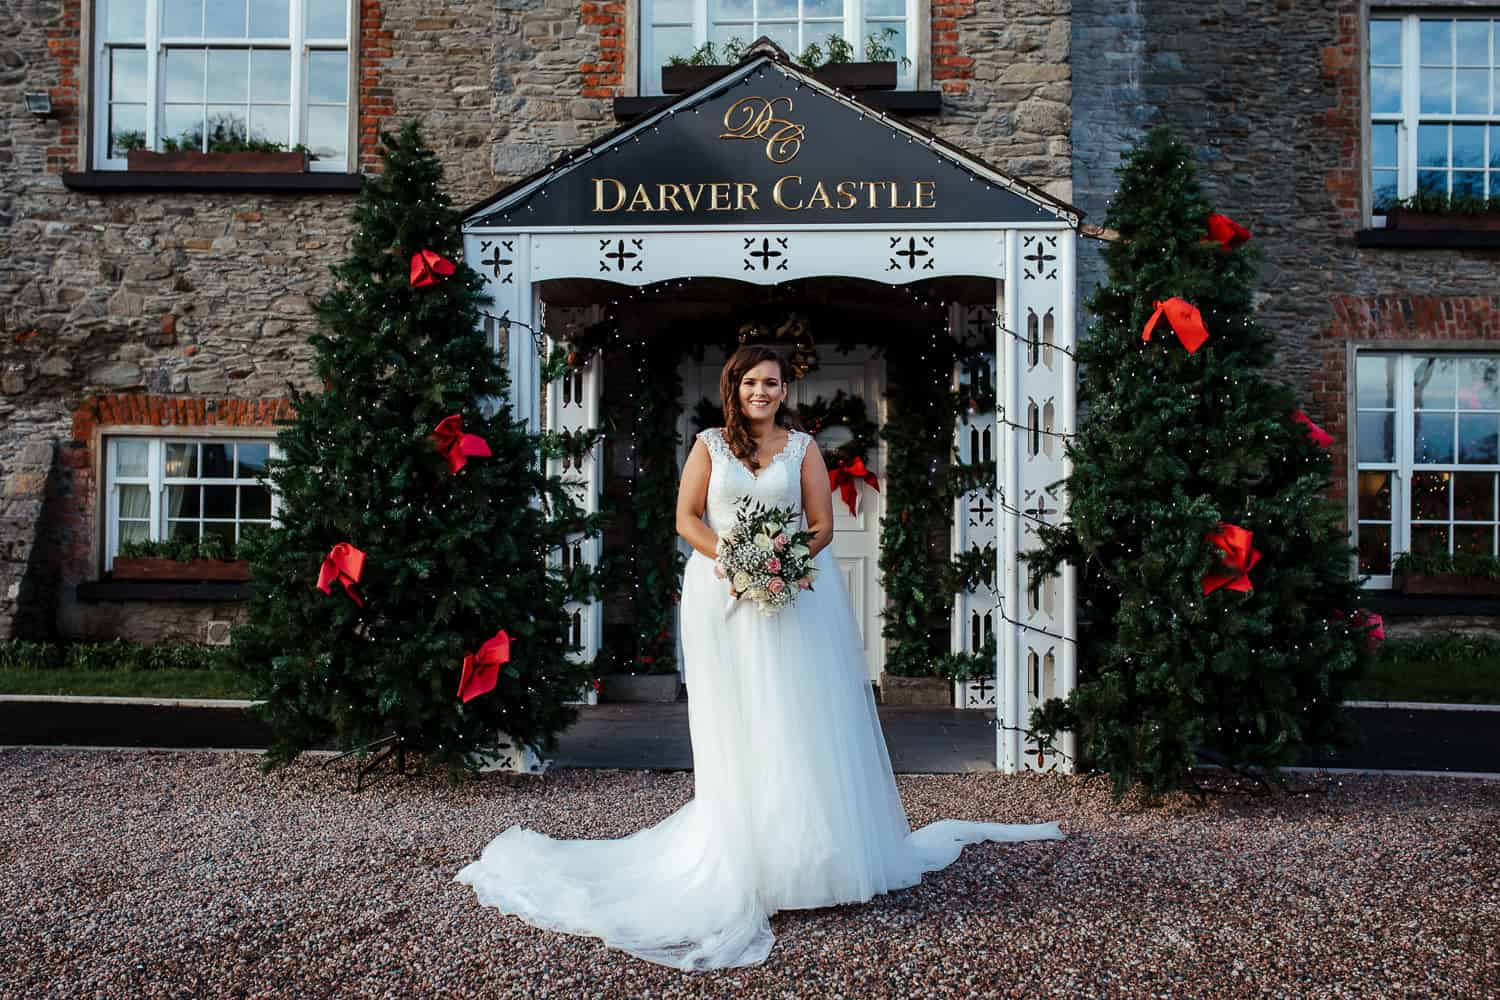 portrait of the bride in front of darver castle